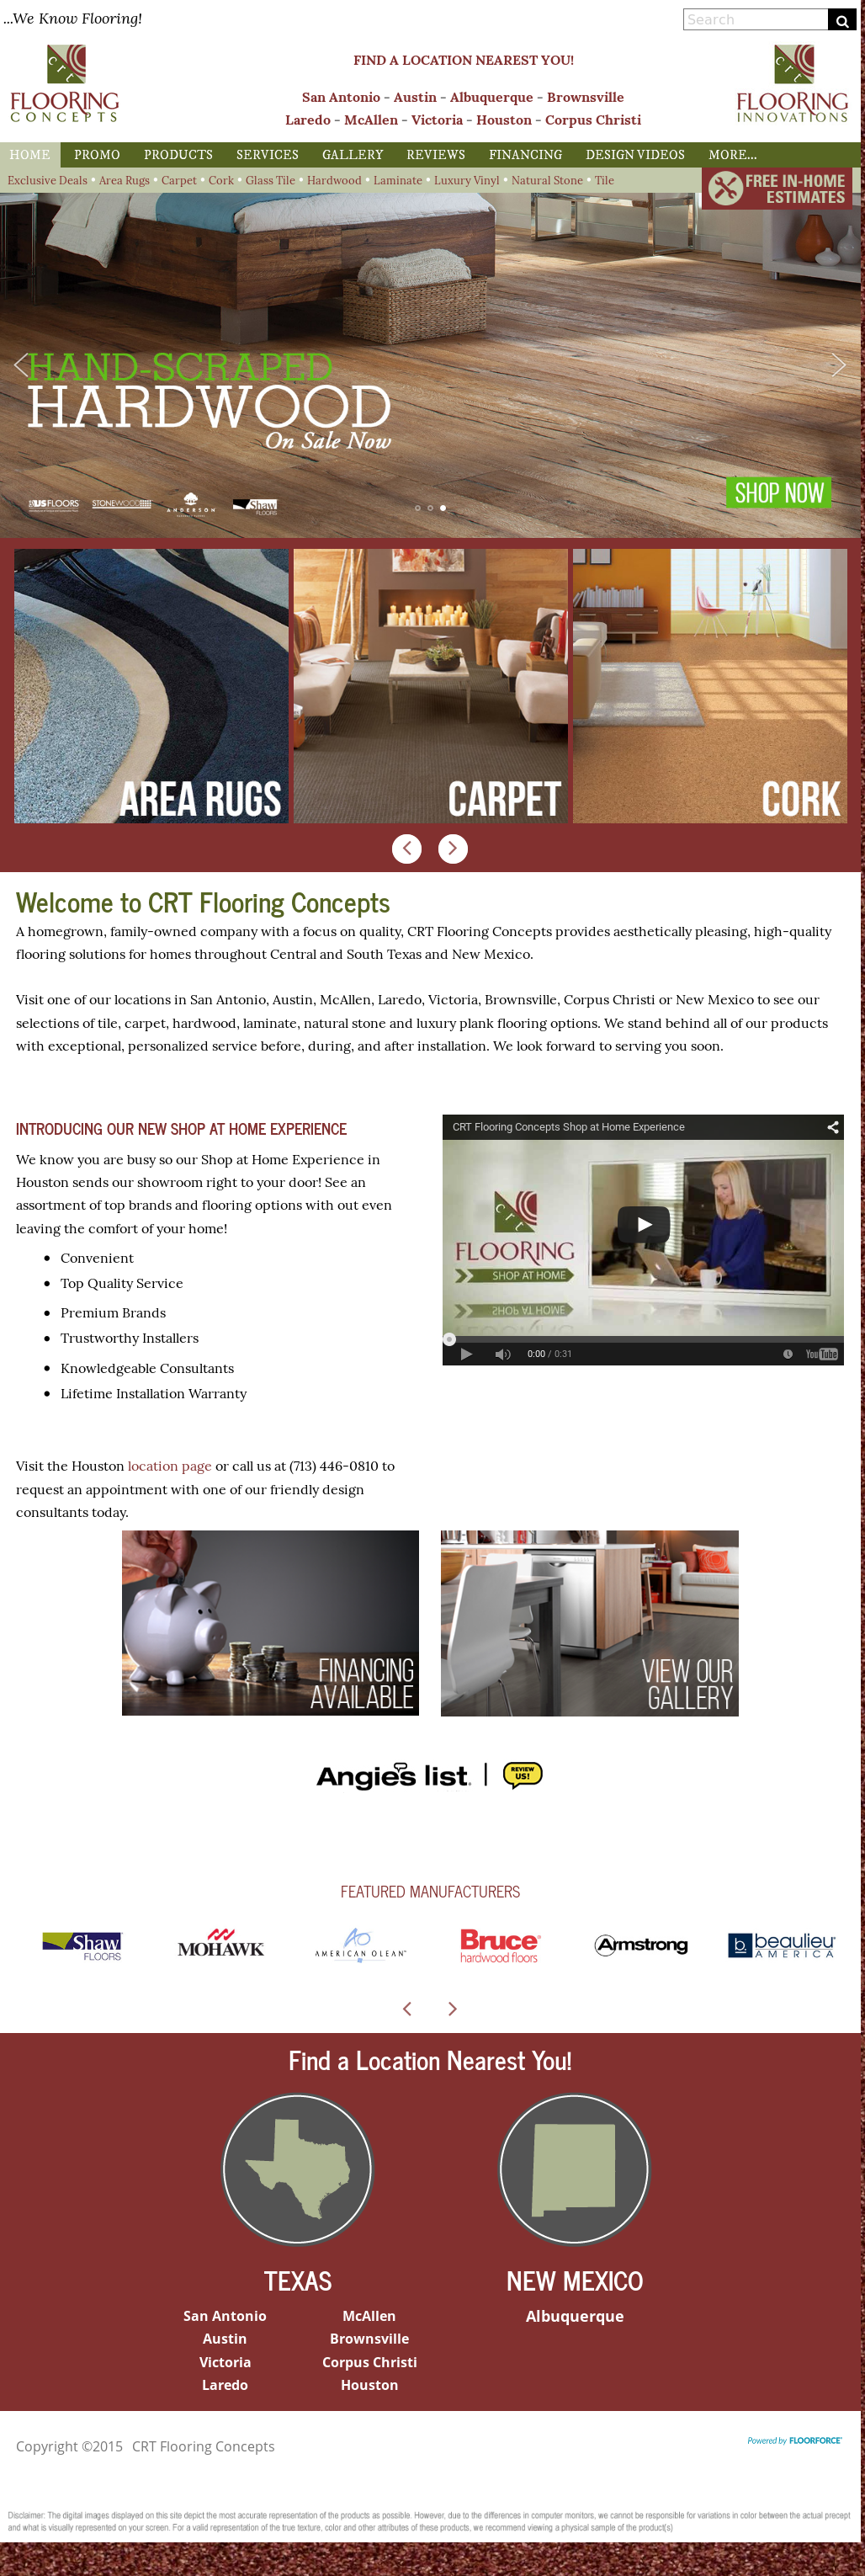 Crt Flooring Concepts Competitors Revenue And Employees Owler Company Profile